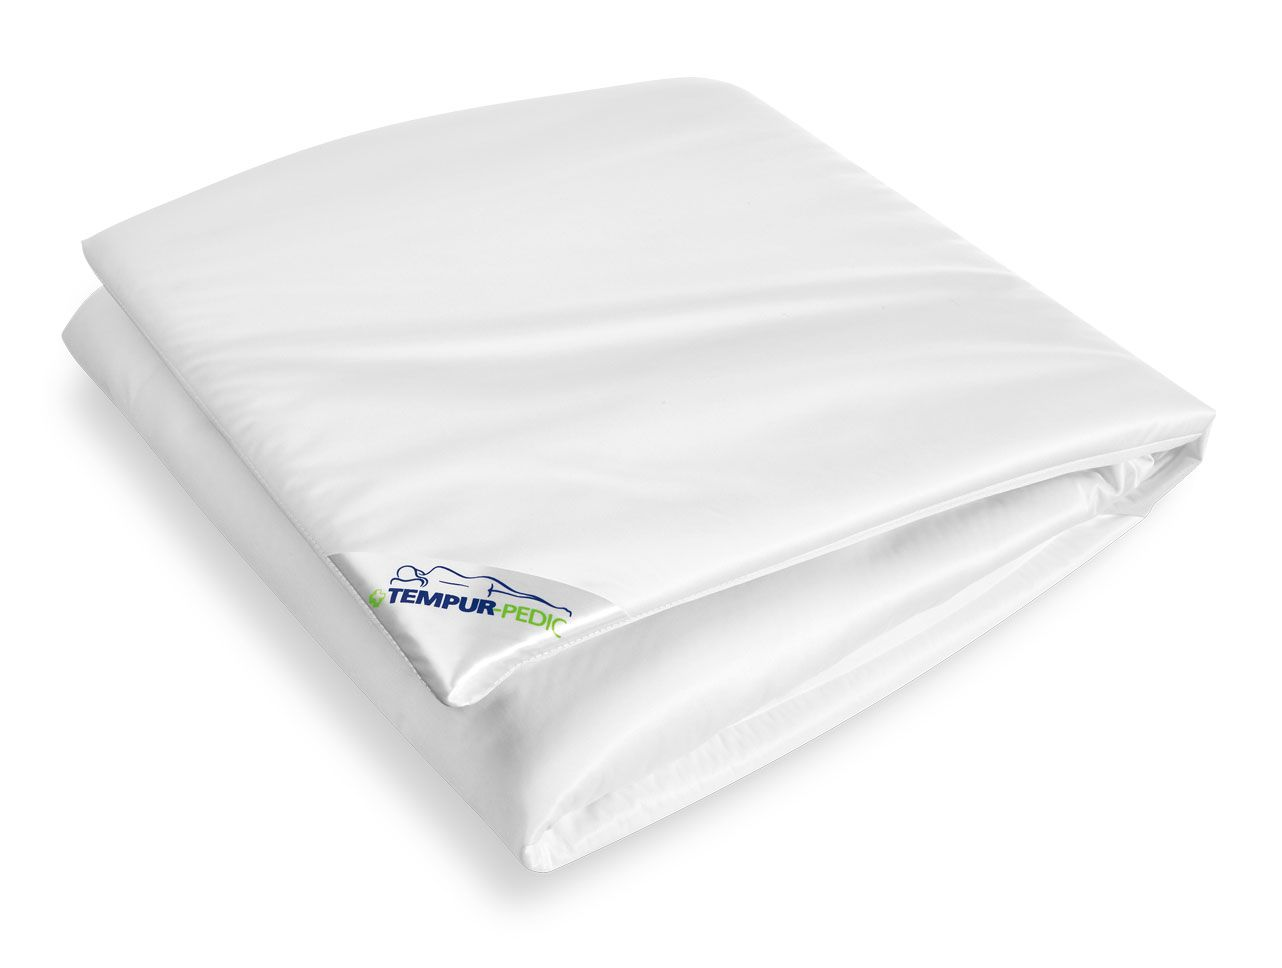 Tempur Pedic King Size Mattress Protector 45703270 Abt